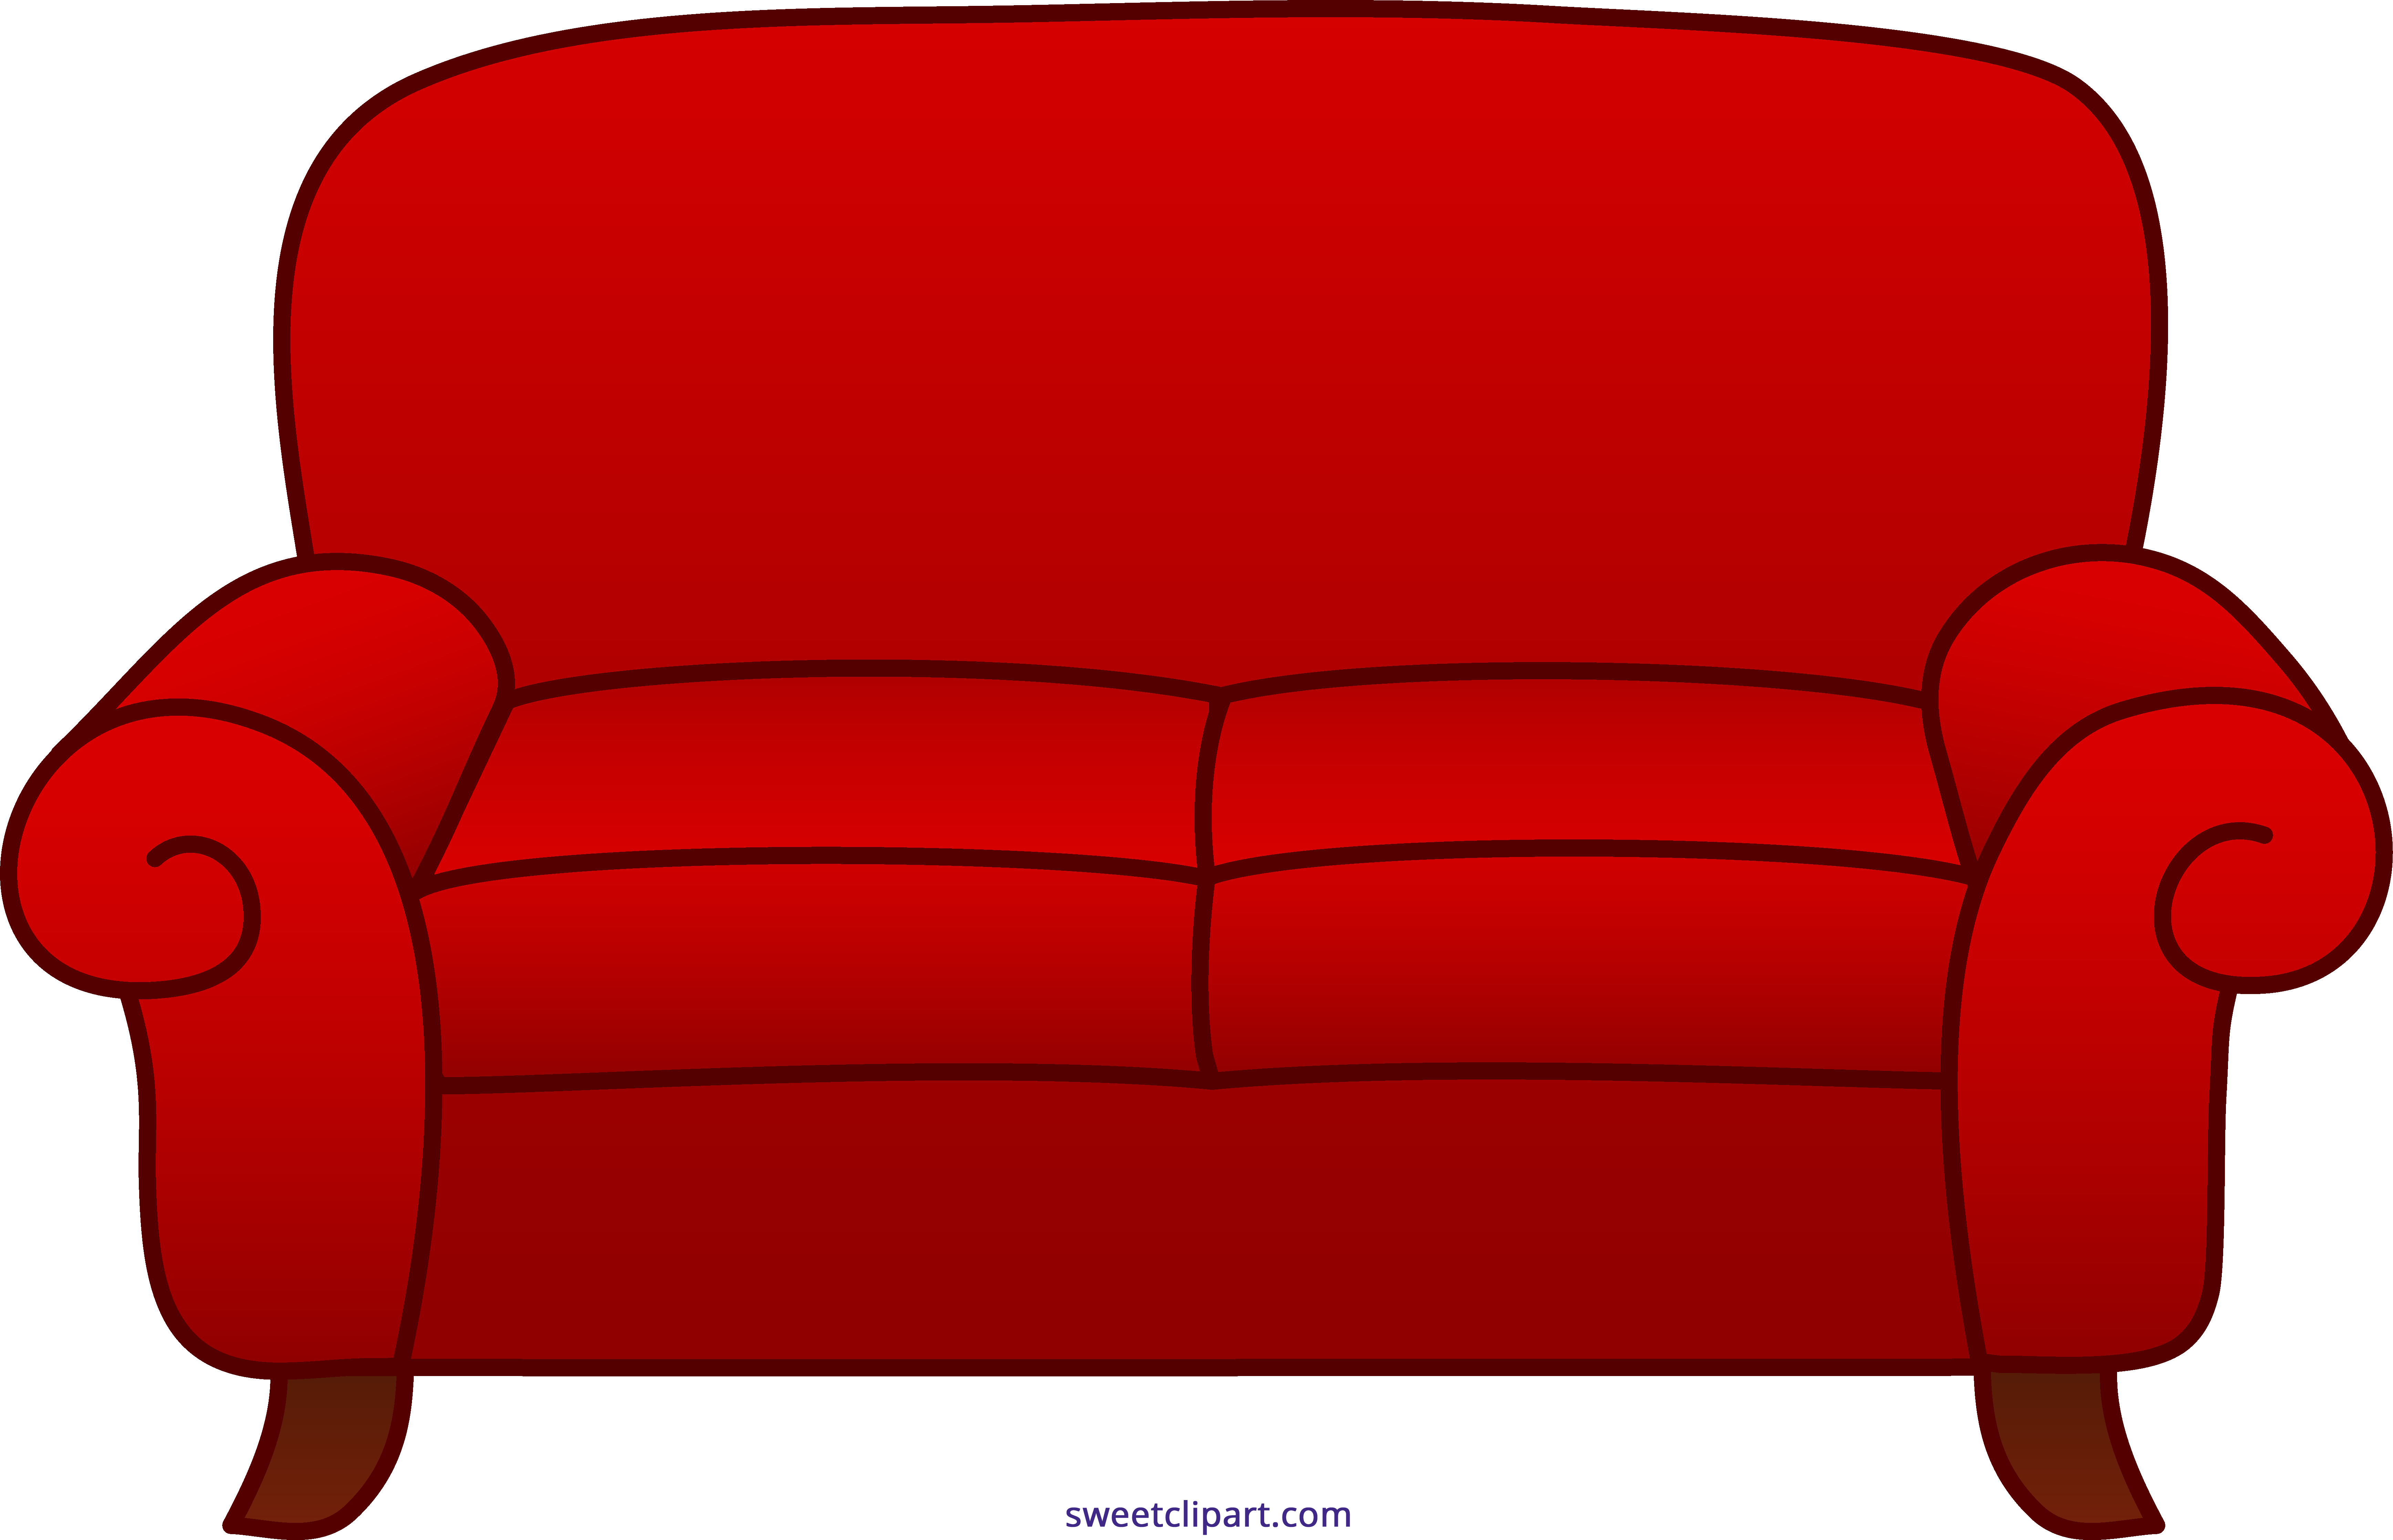 Sofa Red Clipart.